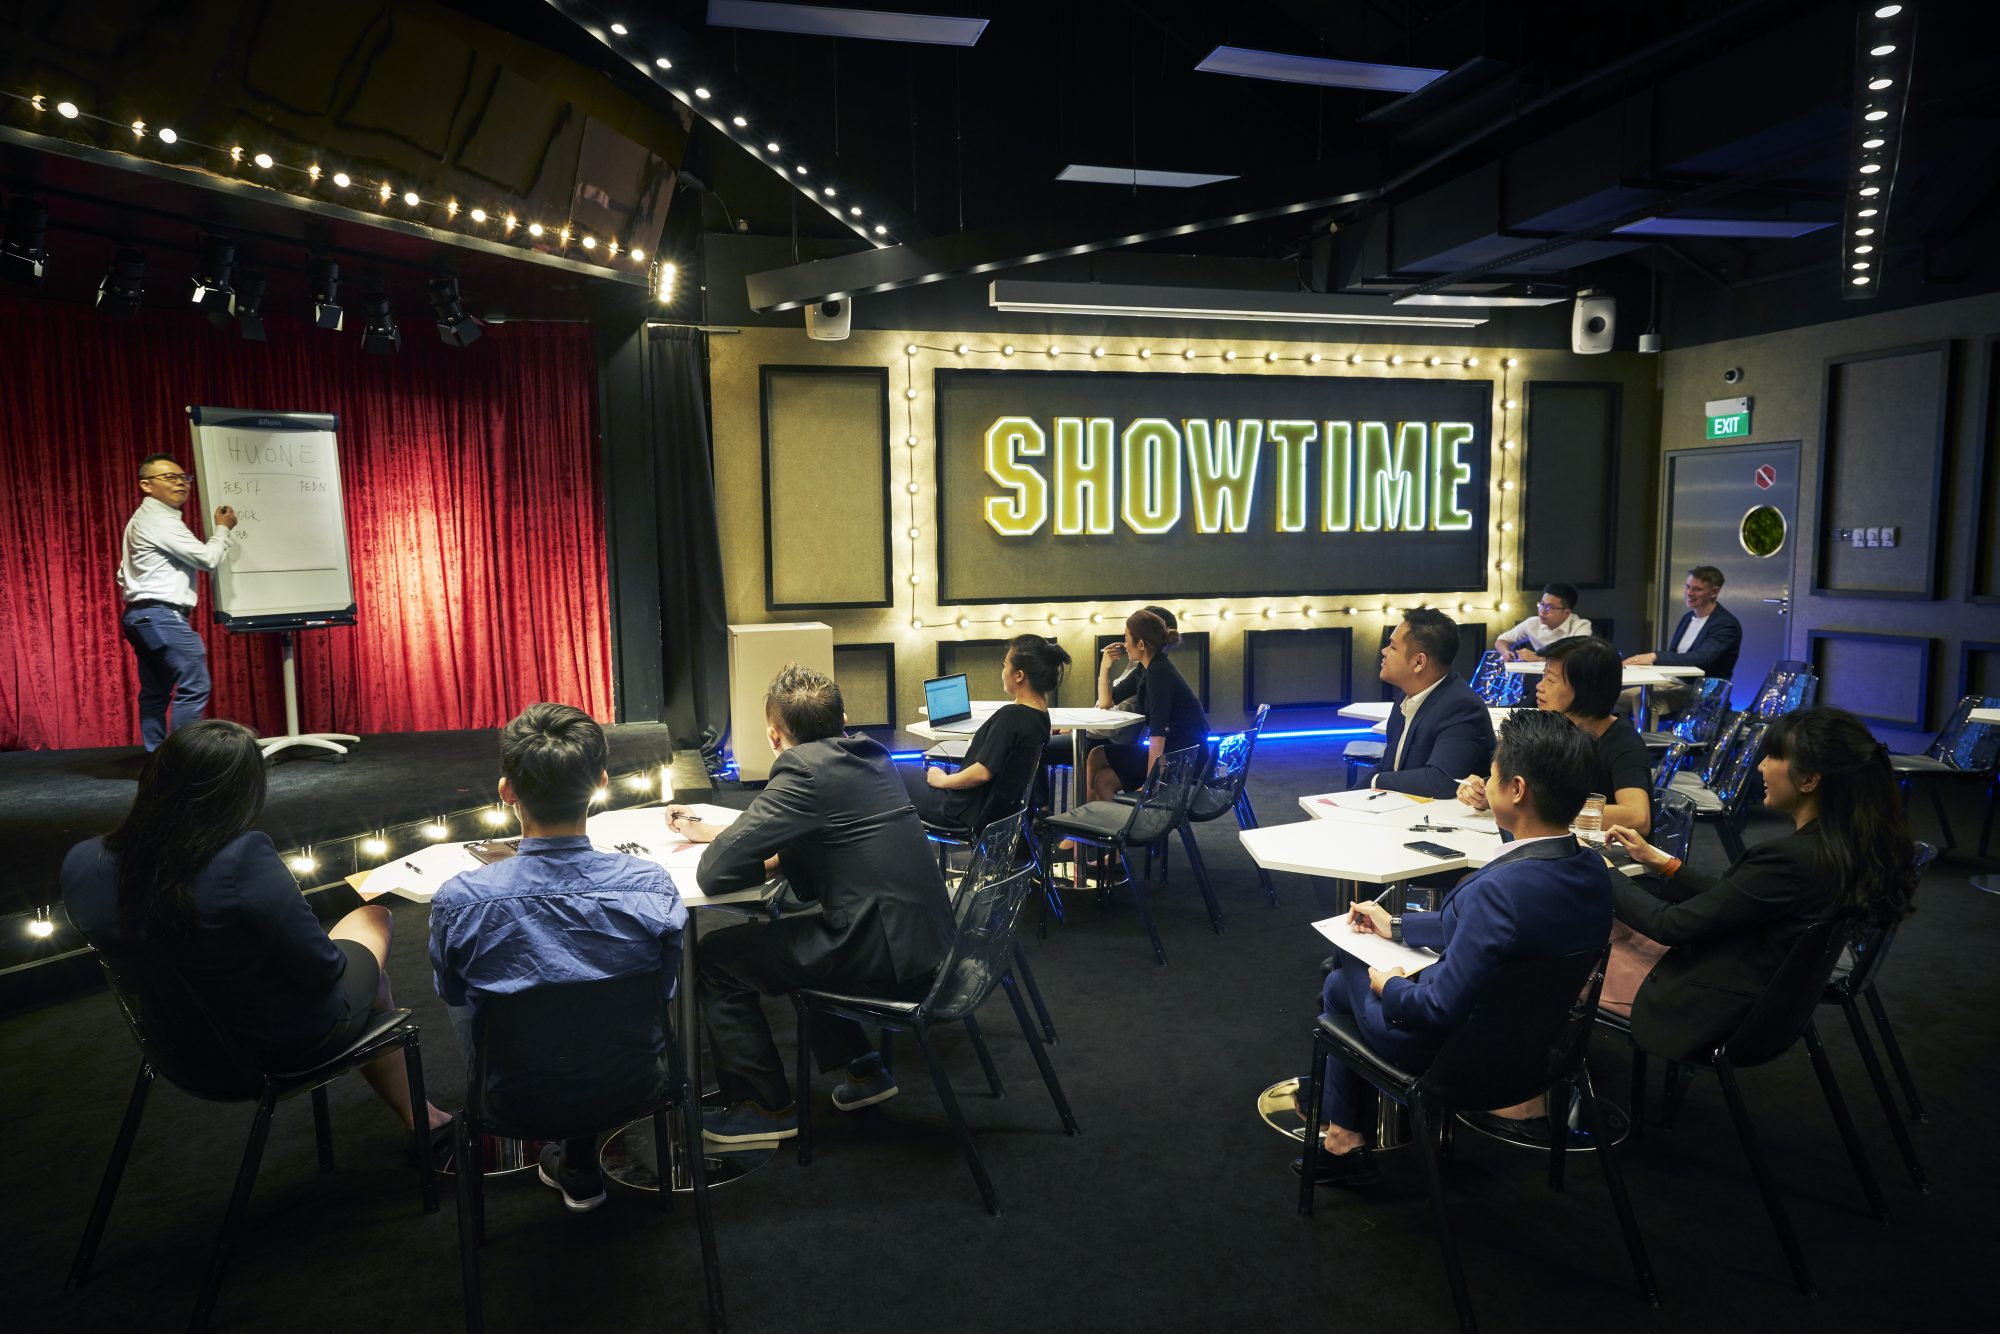 huone-singapore-conference-room-theatre